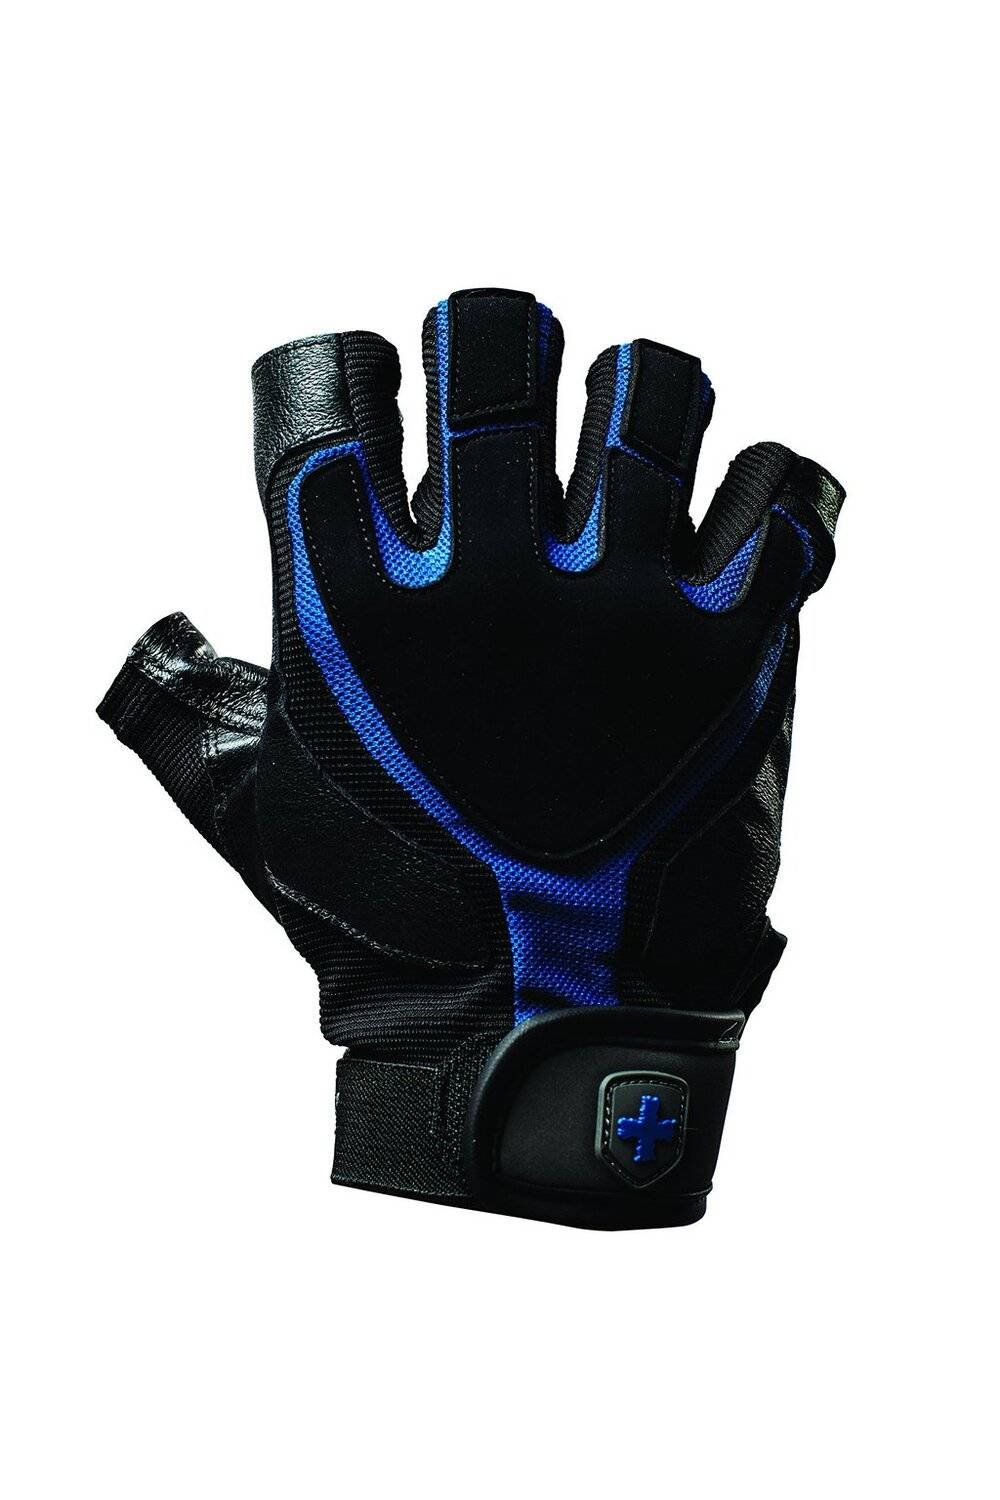 Harbinger Training Grip Tech Gel-Padded Leather Palm Weightlifting Gloves, Pair, Small - yrGear Australia